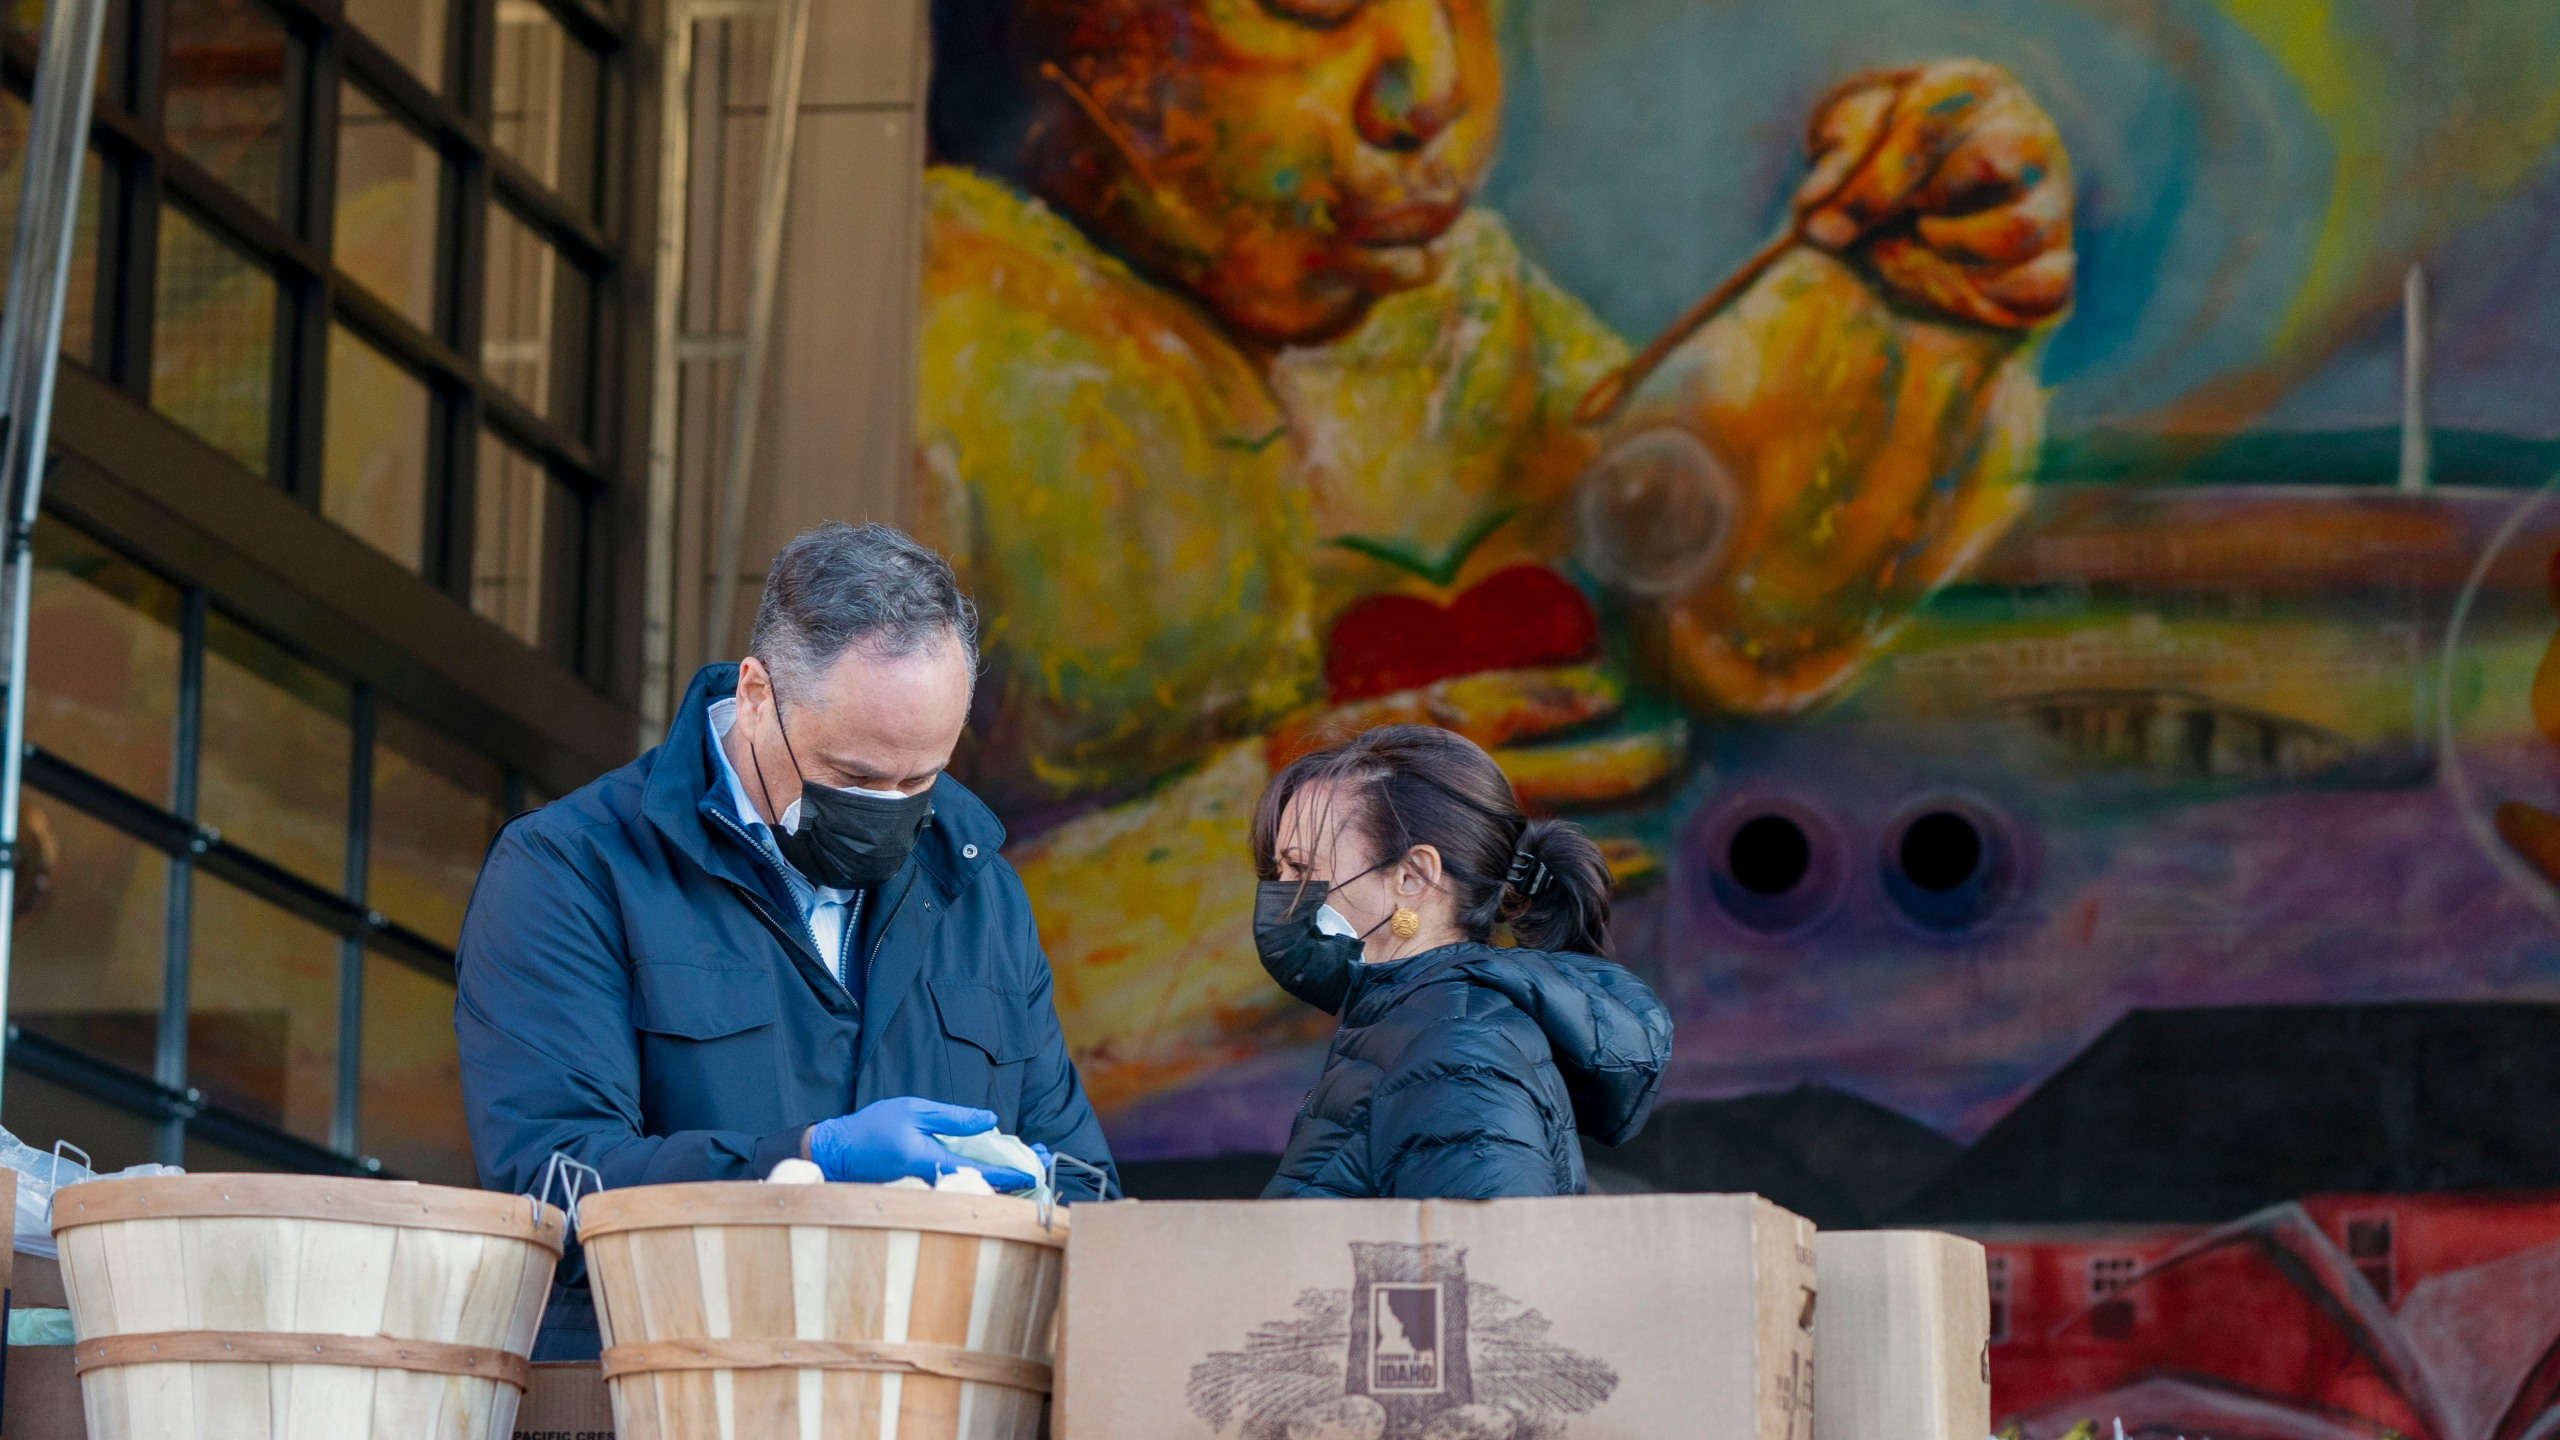 Vice President-elect Kamala Harris, right, and her husband Douglas Emhoff, pack grocery bags for those in need of food while volunteering during the National Day of Service, Monday, Jan. 18, 2021, at Martha's Table in the southeast neighborhood of Washington. (AP Photo/Jacquelyn Martin)